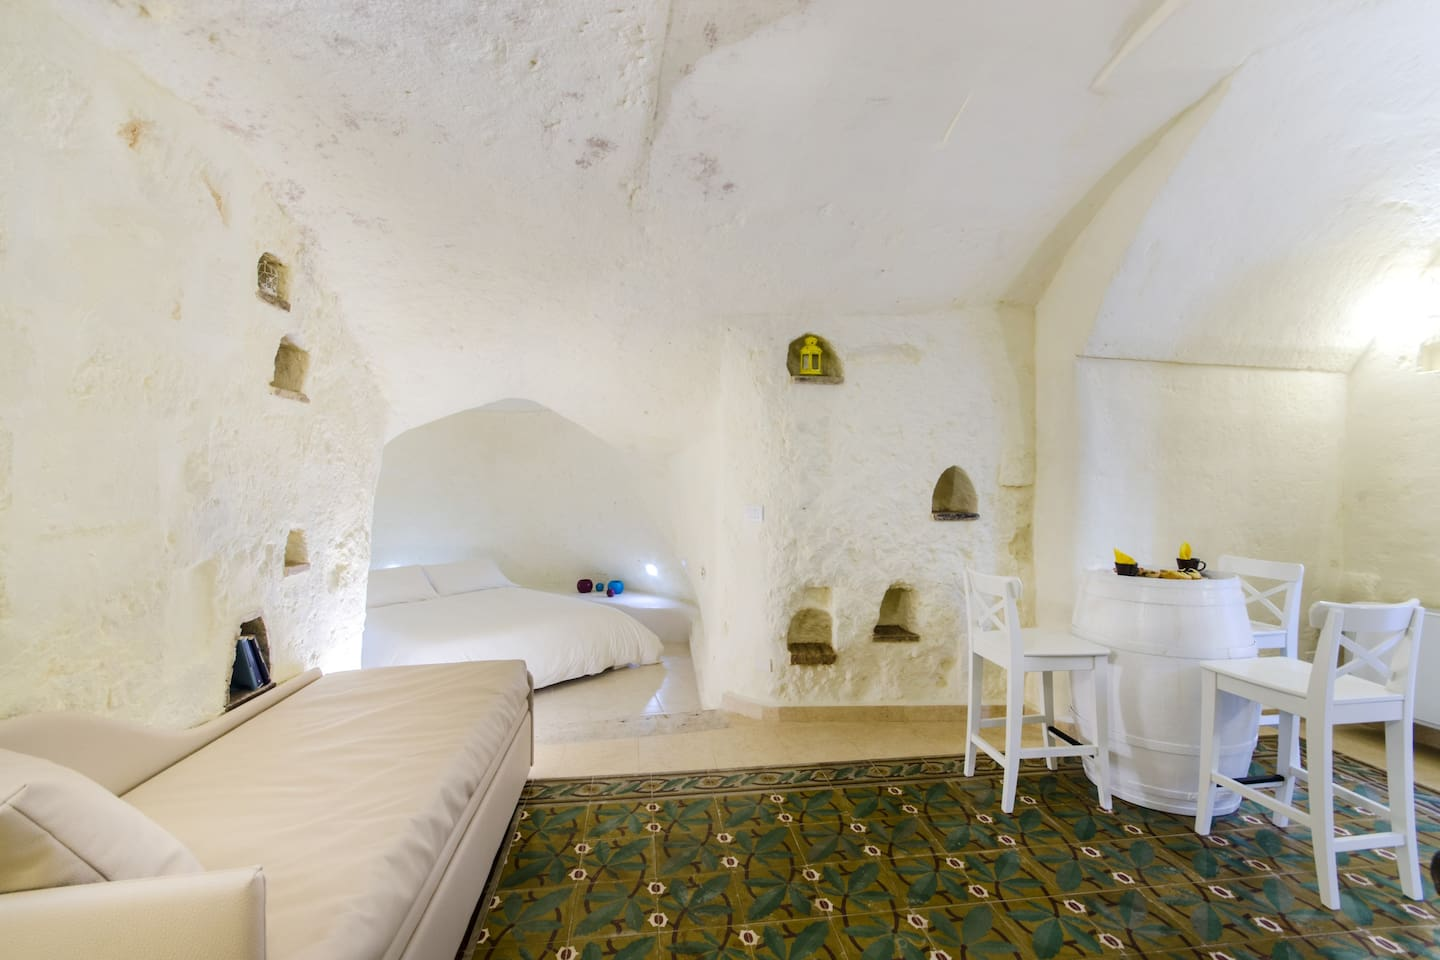 The top 20 earth houses for rent in matera   airbnb, basilicata, italy